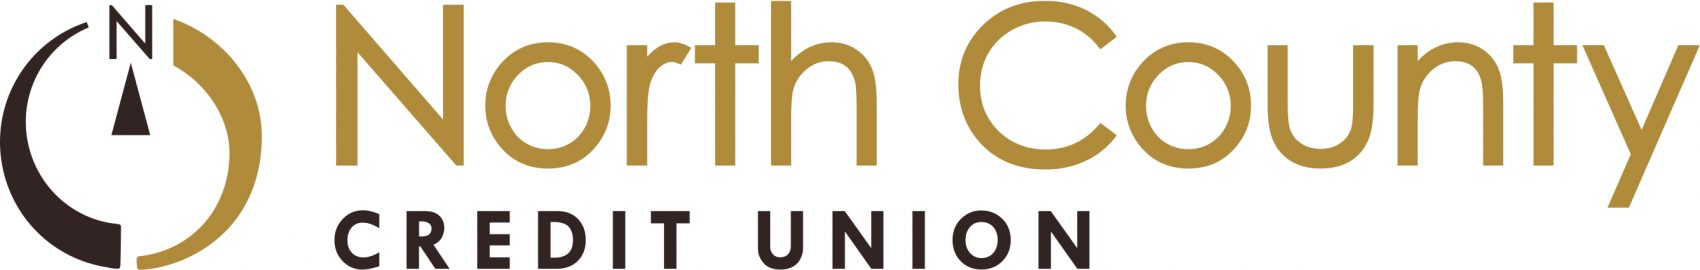 North County Credit Union